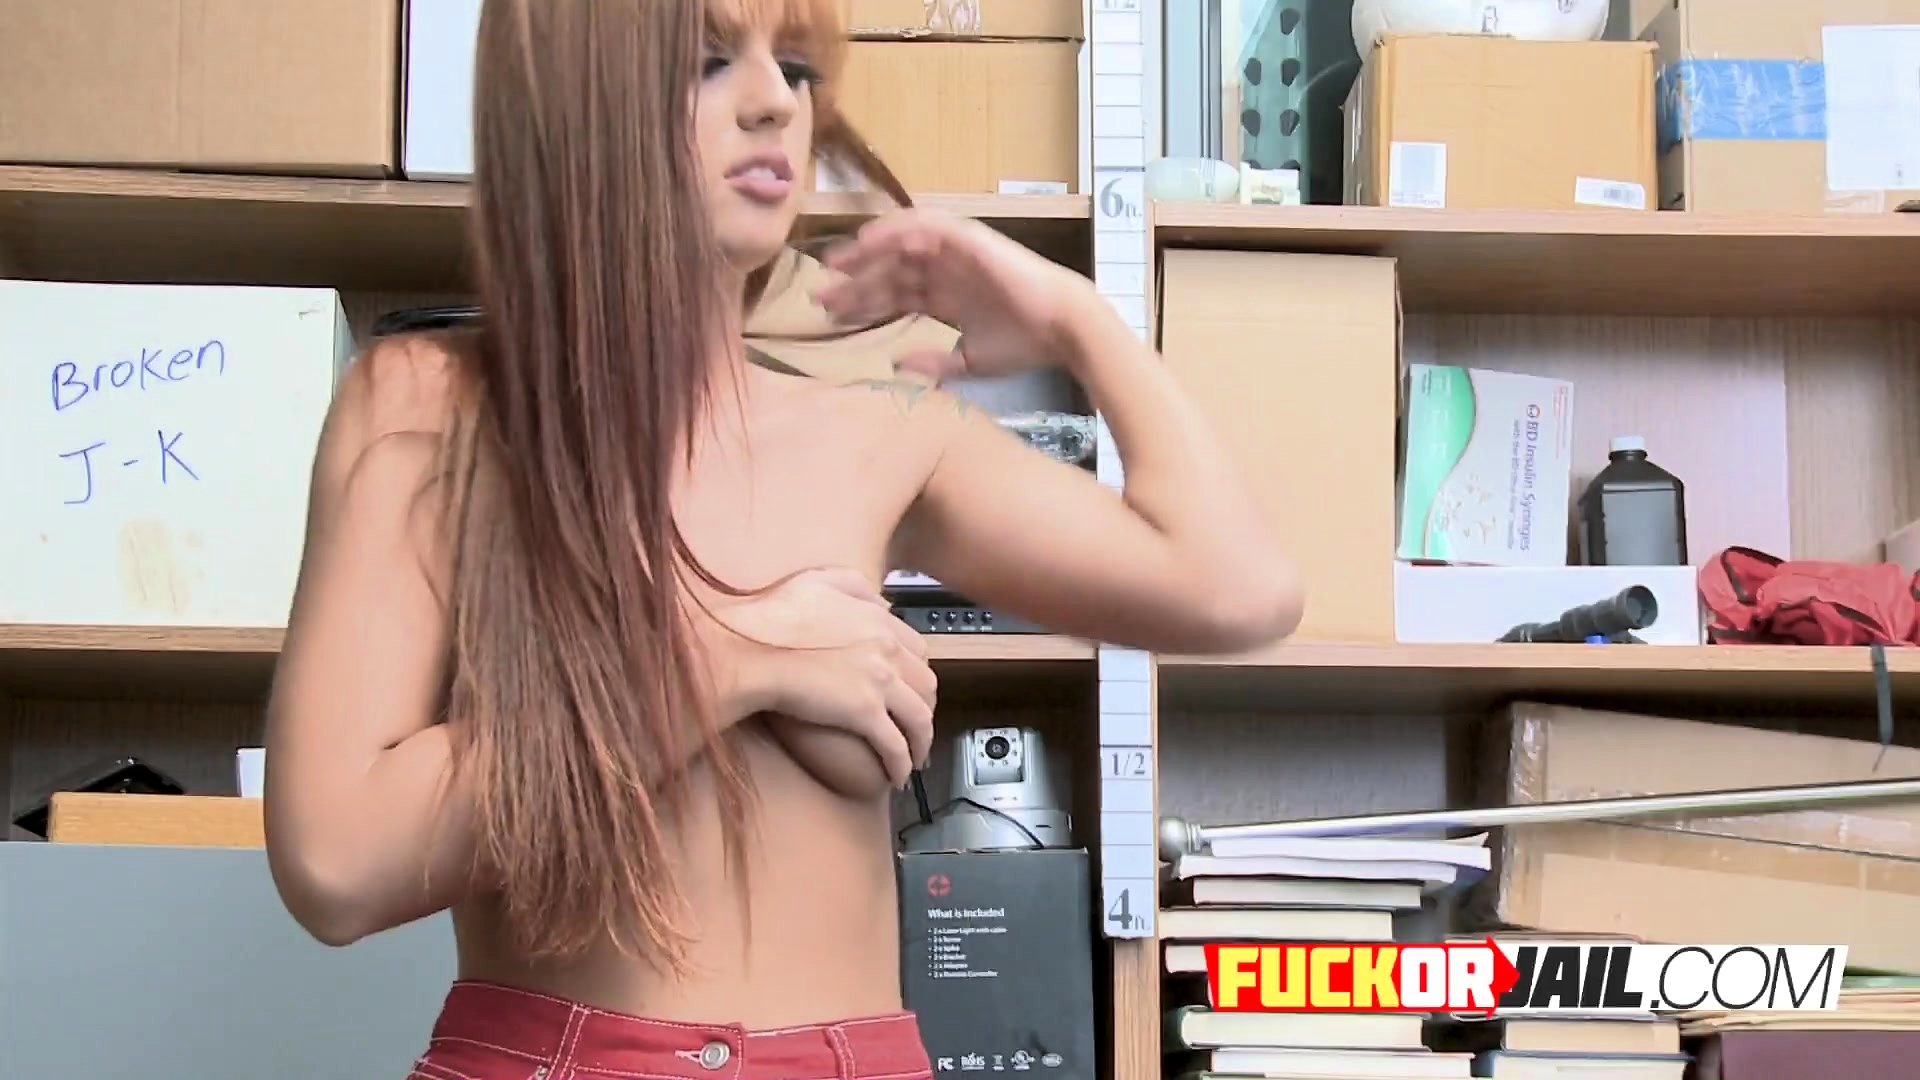 Horny redhead opens her PUSSY to BIG-DICKED investigator